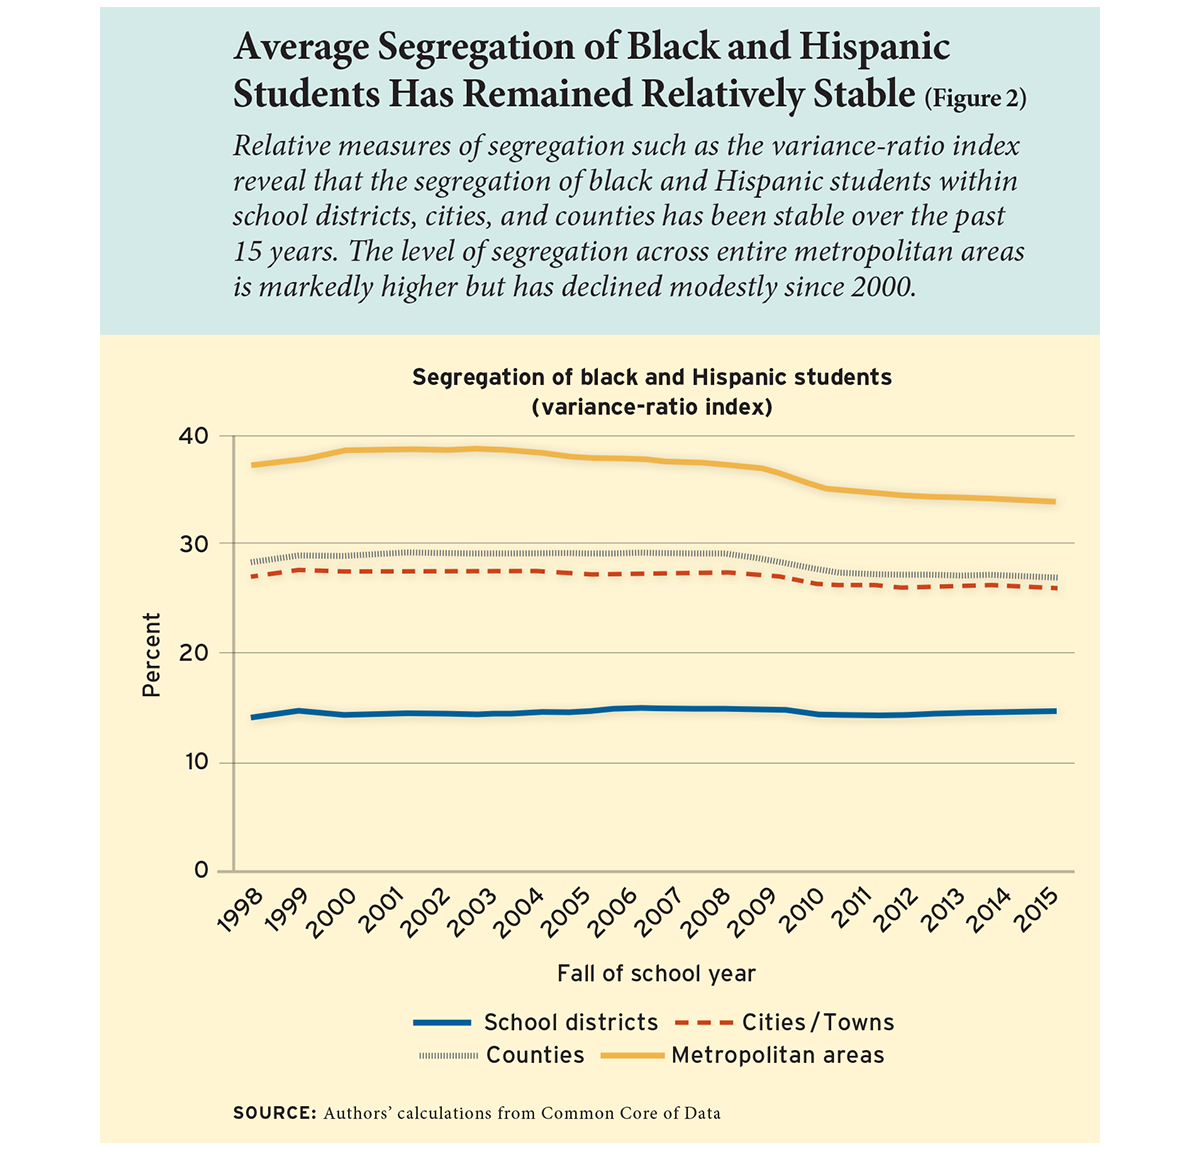 Average Segregation of Black and Hispanic Students Has Remained Relatively Stable (Figure 2)